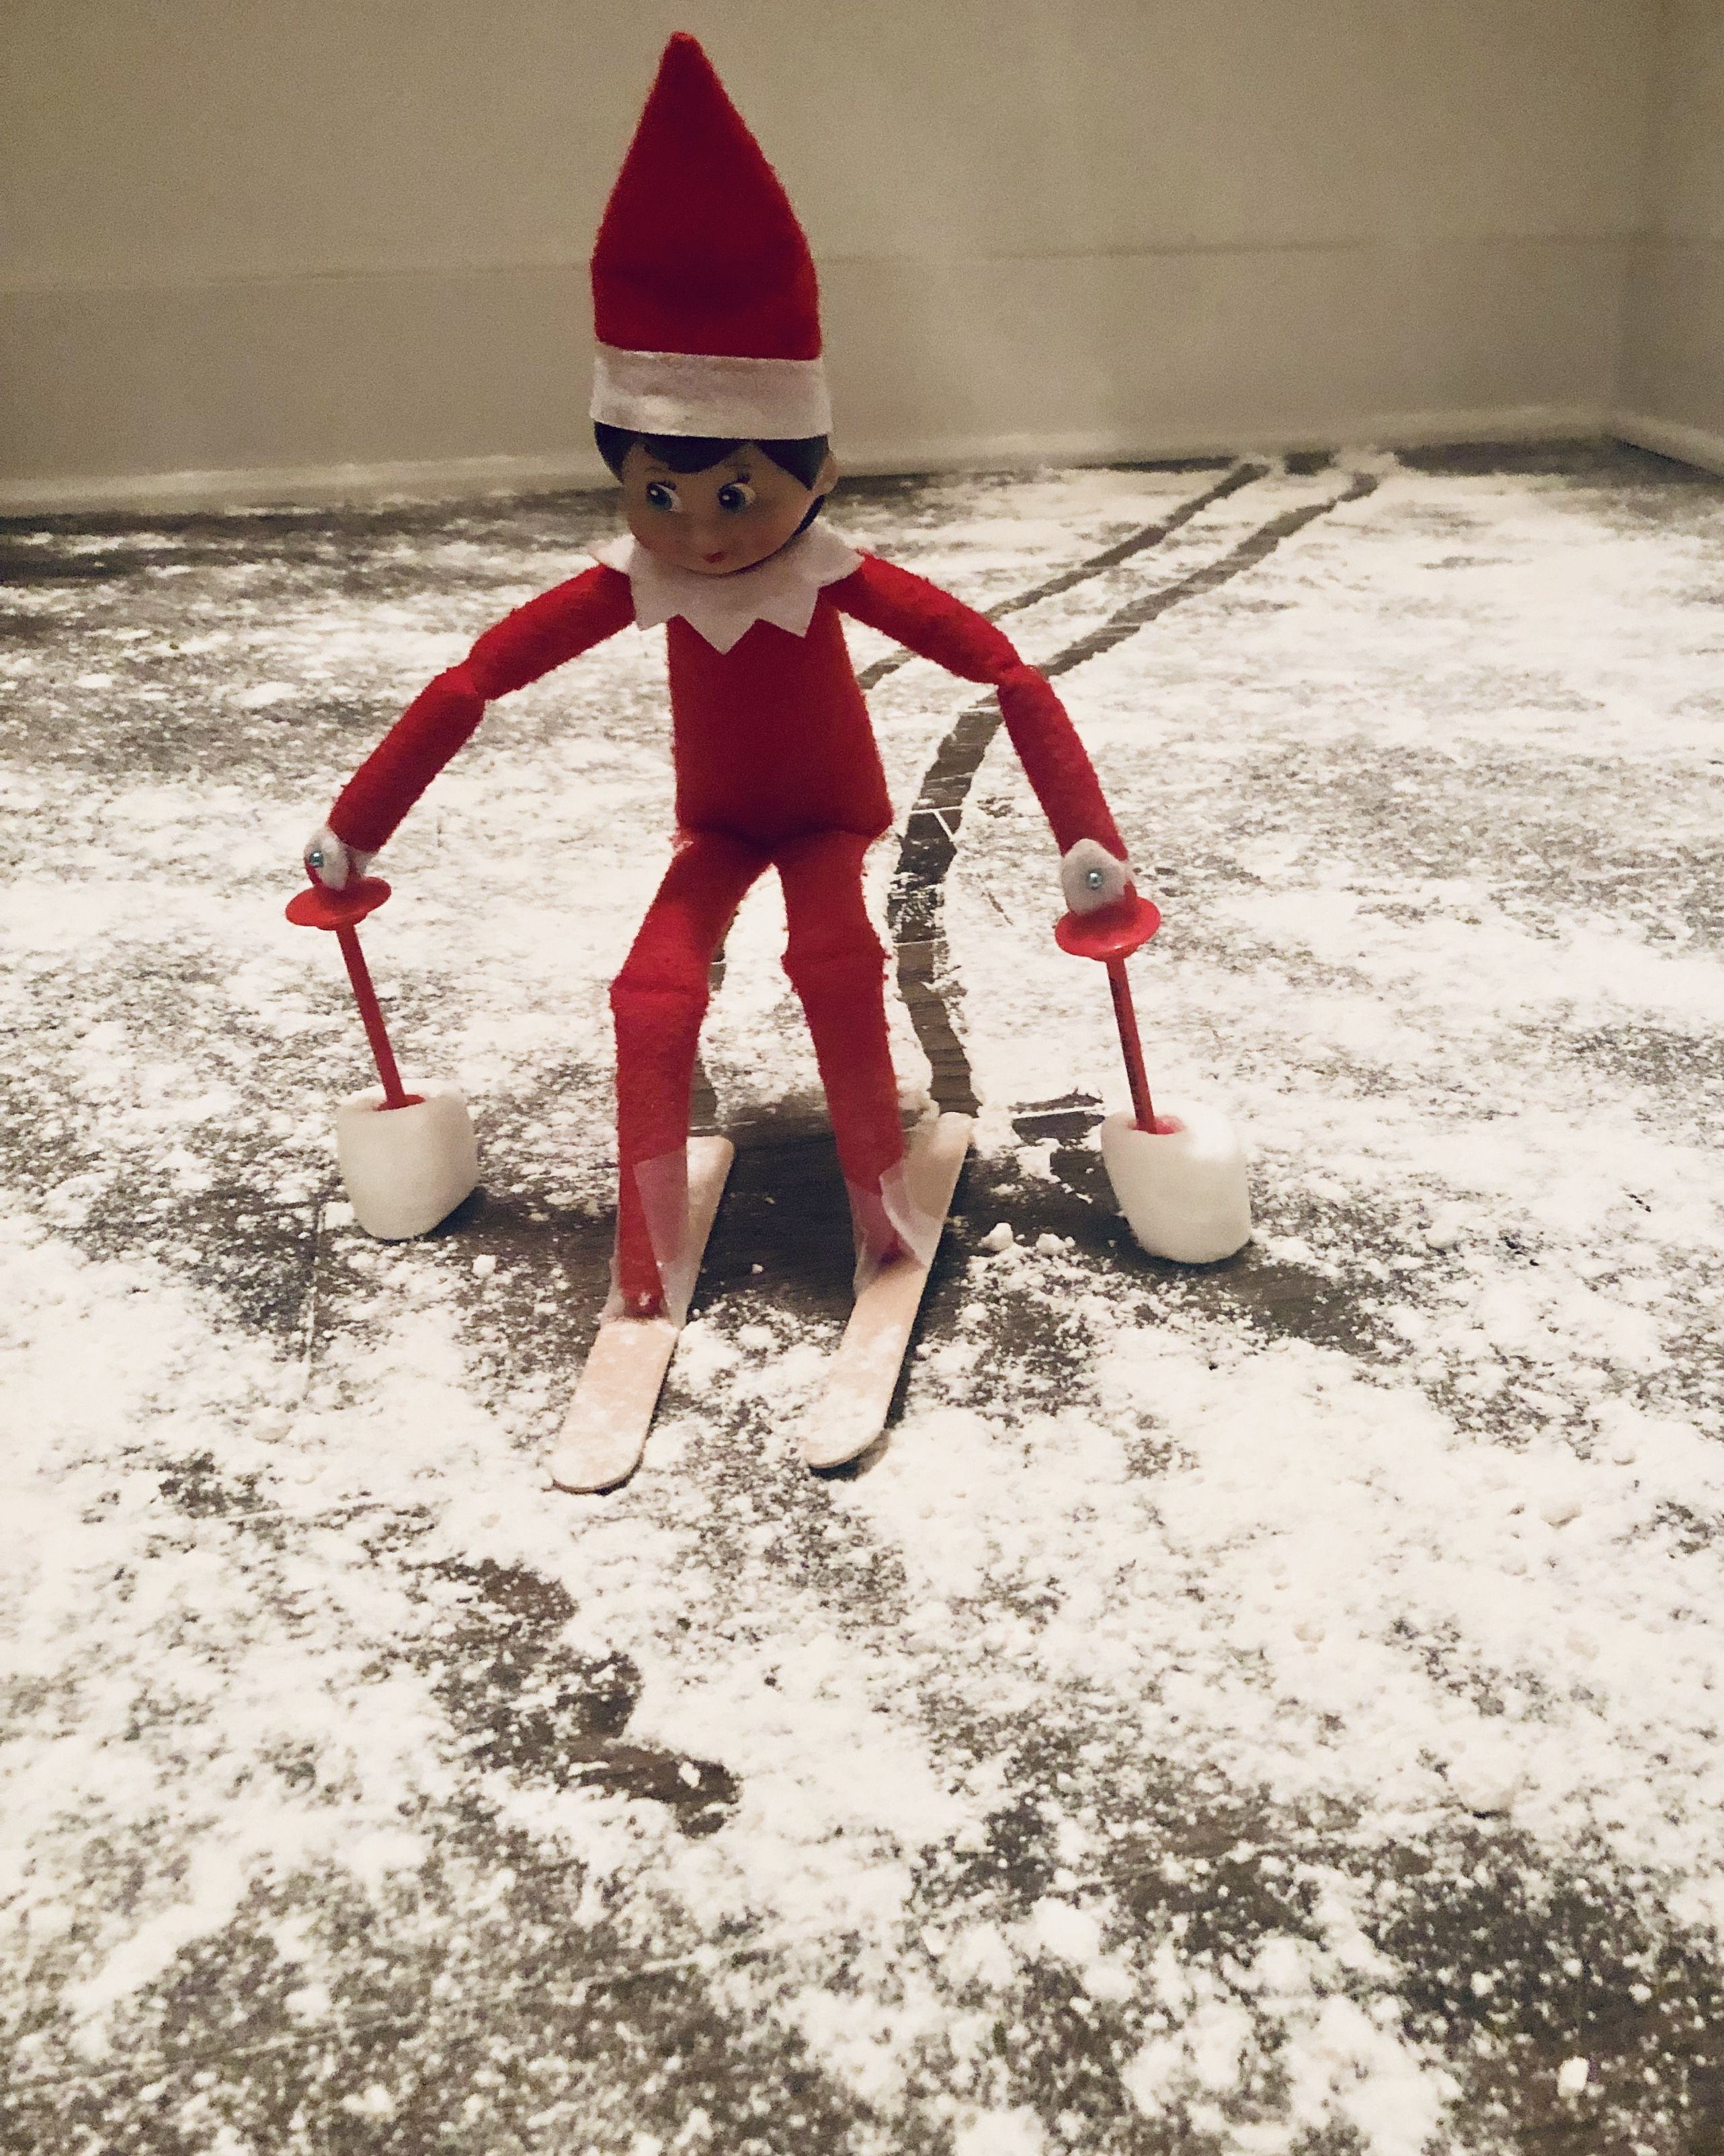 Best Images Elf on the shelf idea -elf on a shelf skiing! Fun for the kids!  Tips   Elf on the shelf idea -elf on a shelf skiing! Fun for the kids!  #Elf #Fun #Idea #Images #Kids #Shelf #skiing #Tips #elfontheshelfideas